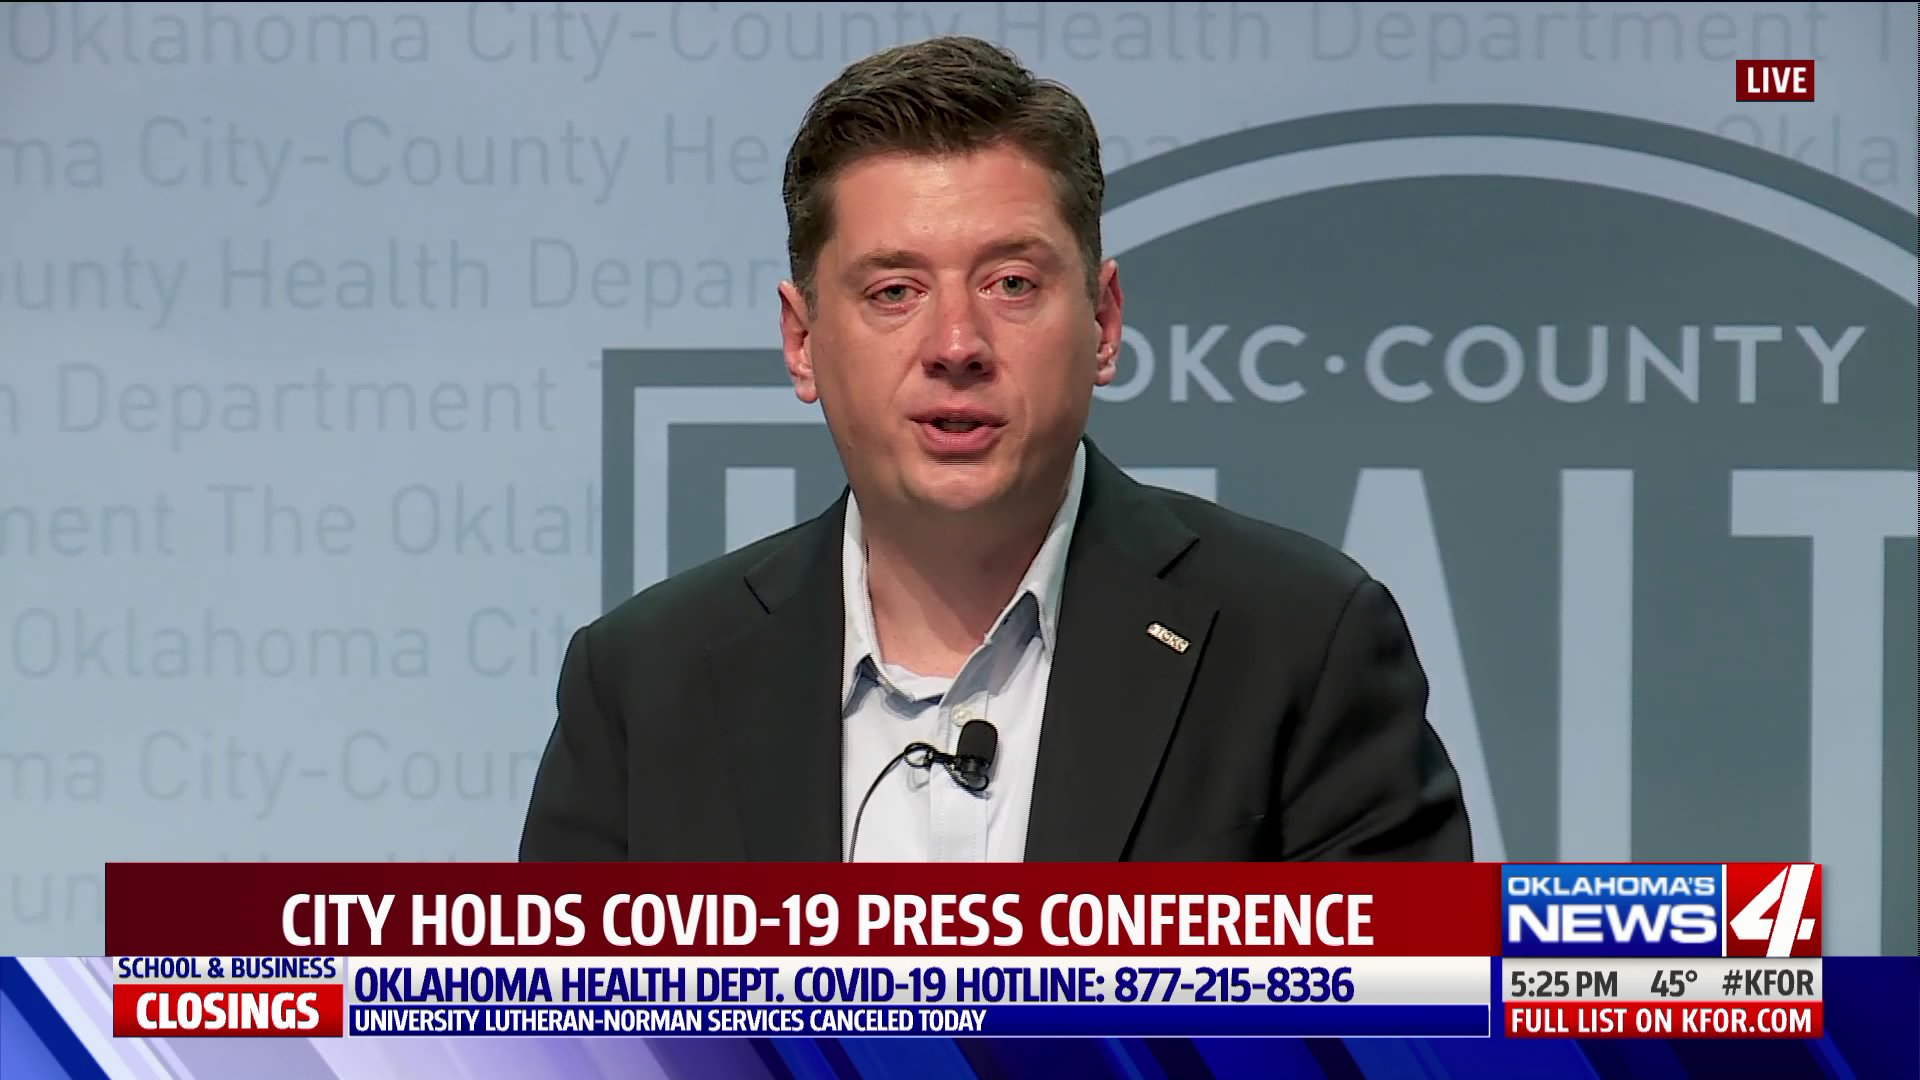 David Holt holds press conference on COVID-19